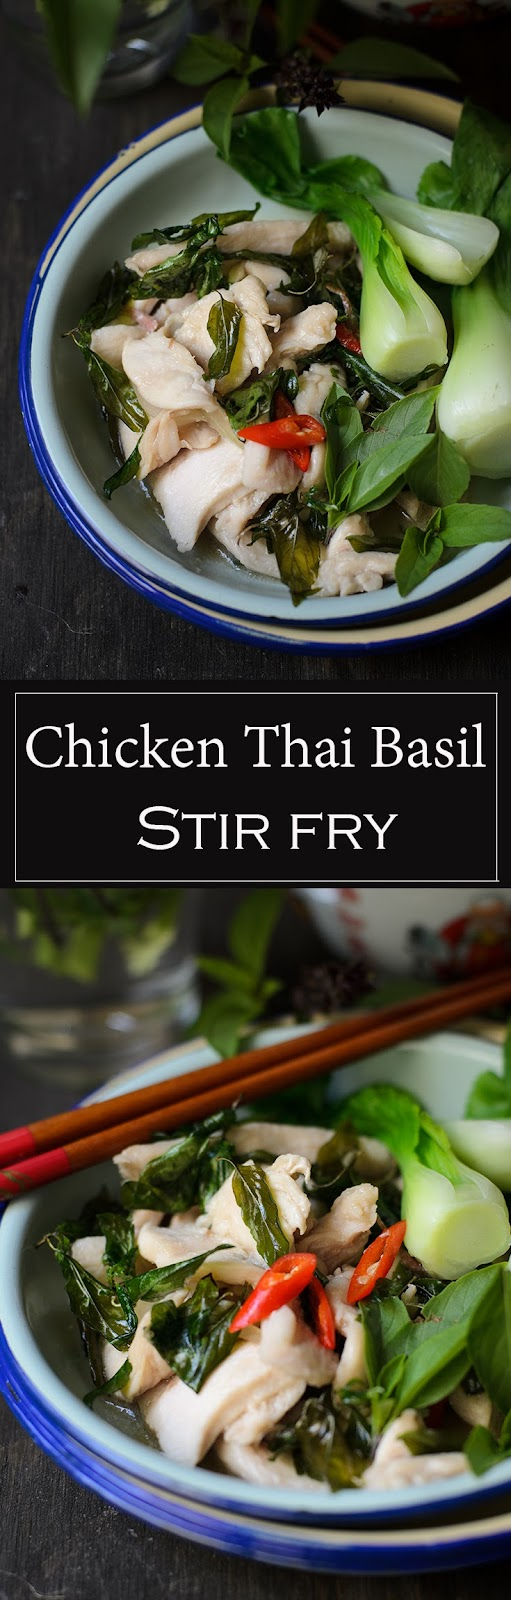 Quick Chicken Thai Basil Stir-fry for the busy mid-week quick dinner.